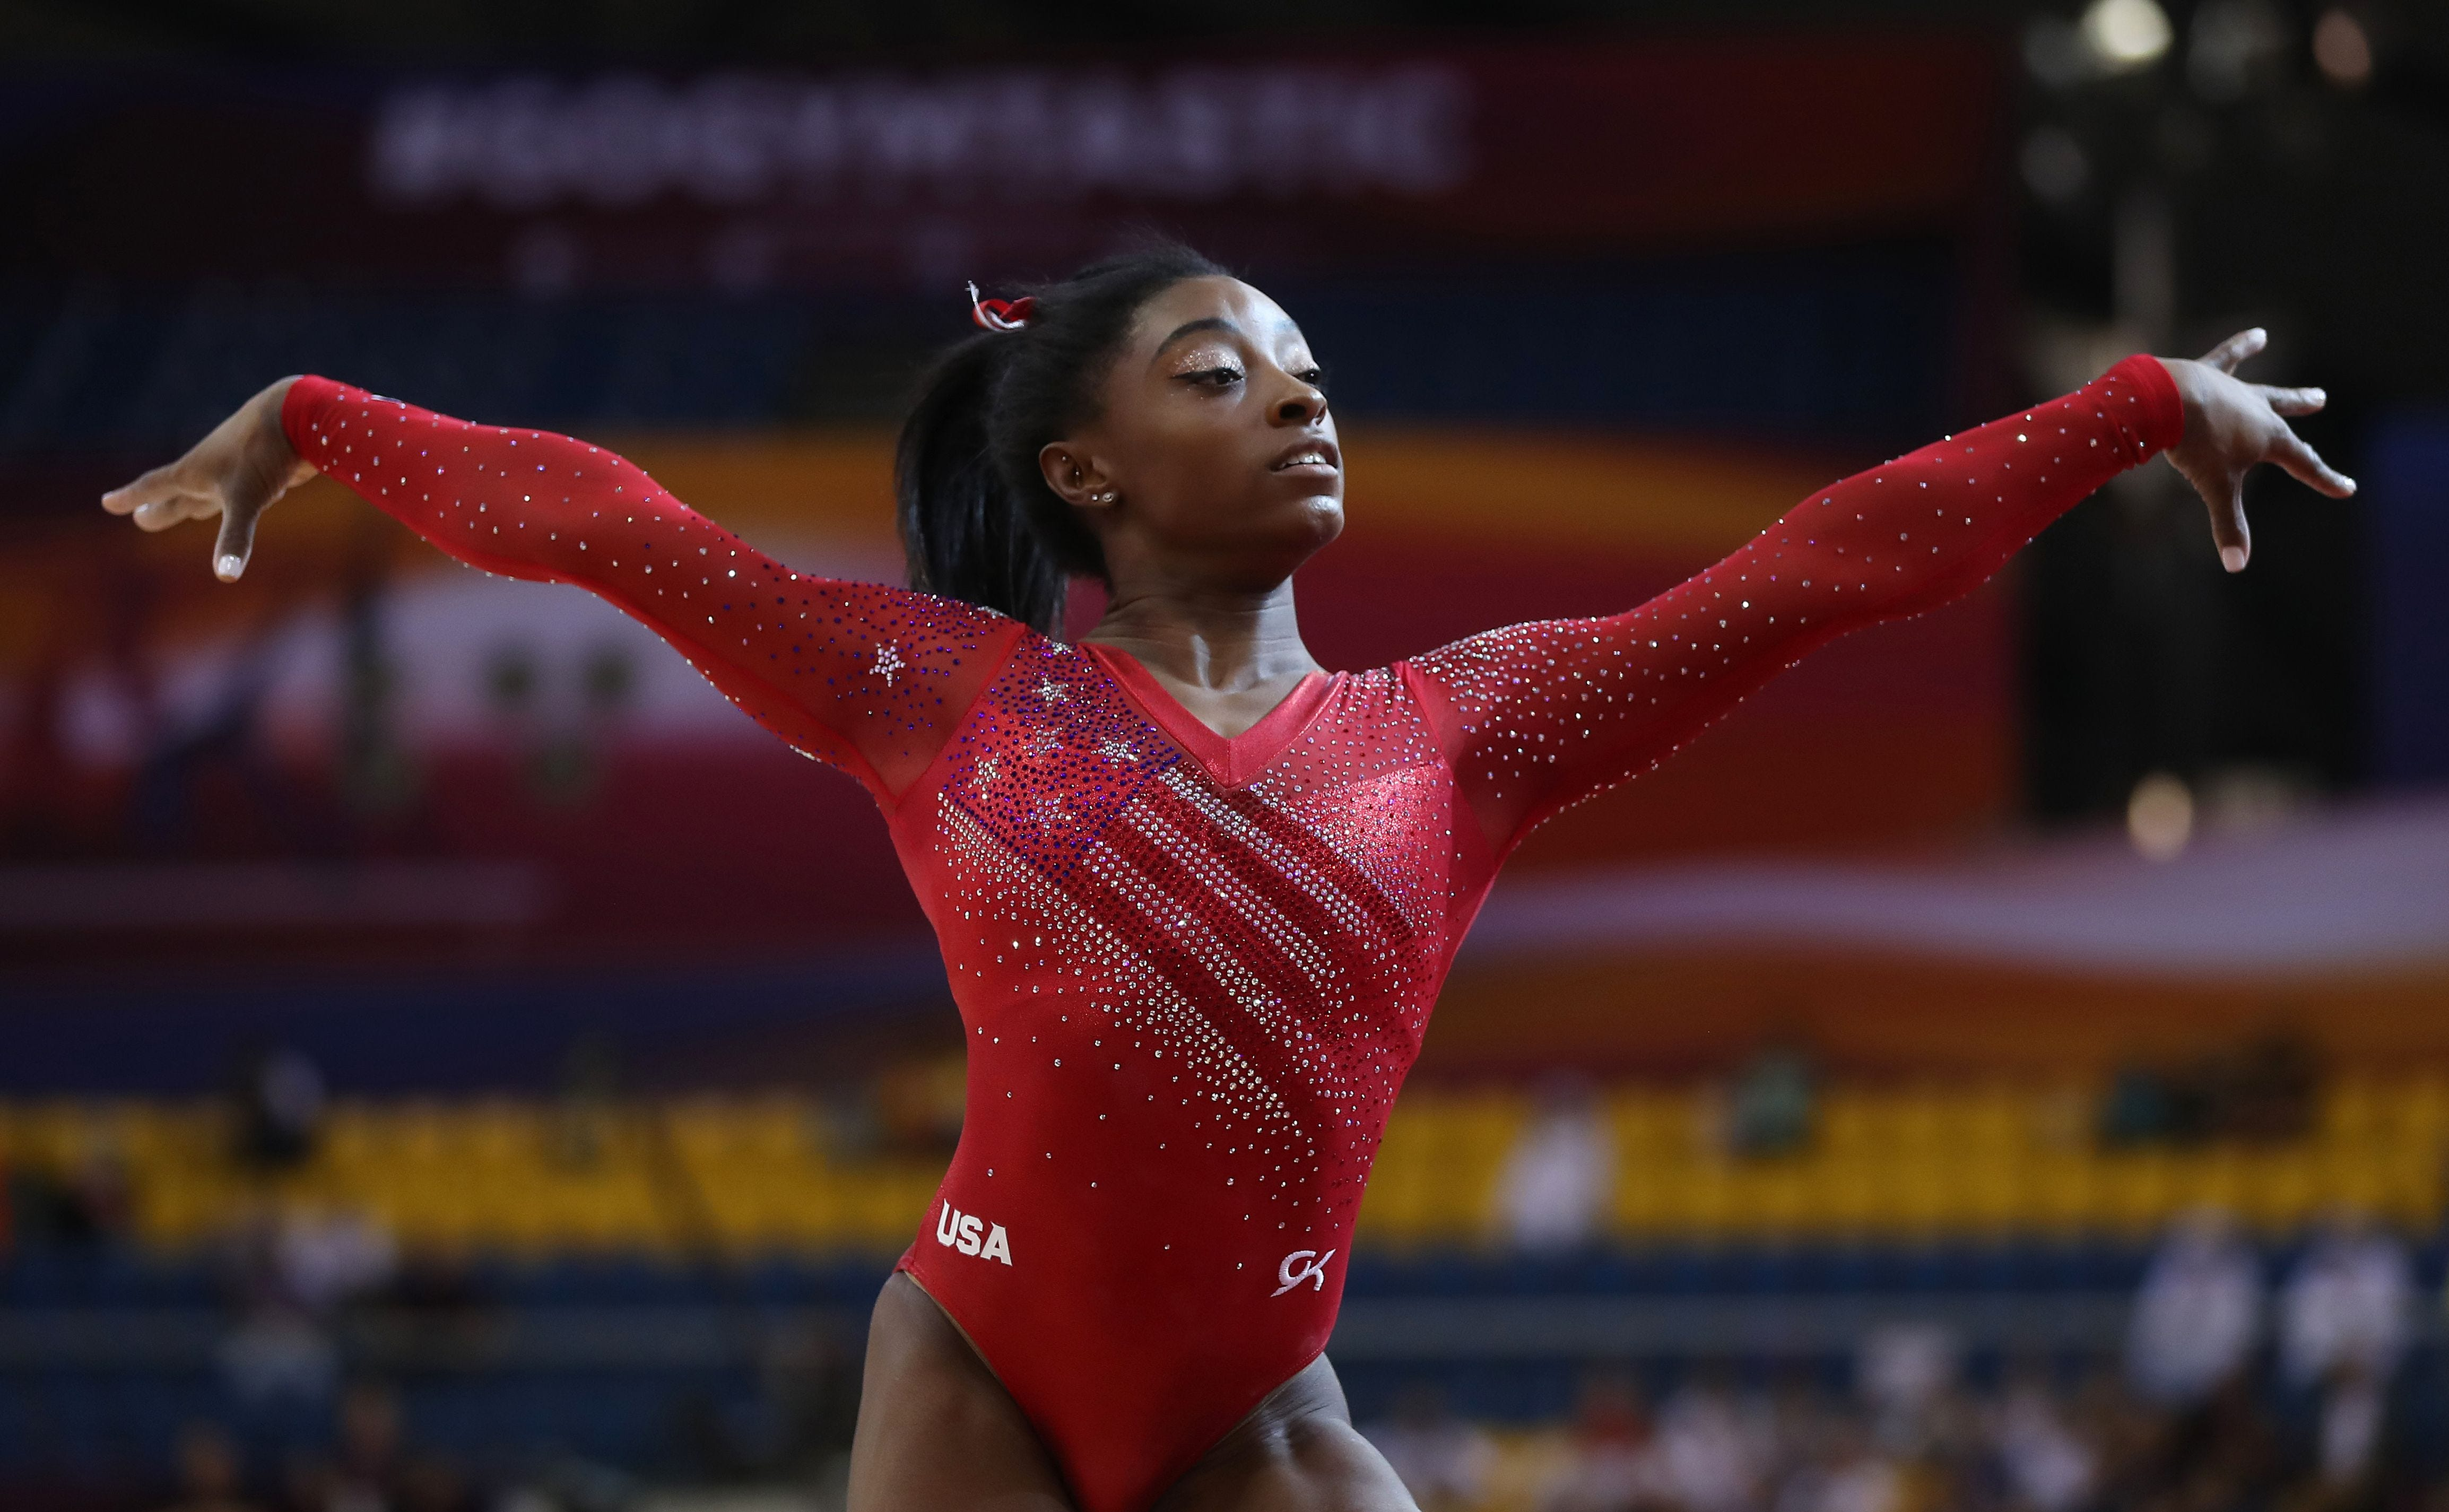 Report: USA Gymnastics never asked Simone Biles if she'd been abused by Larry Nassar